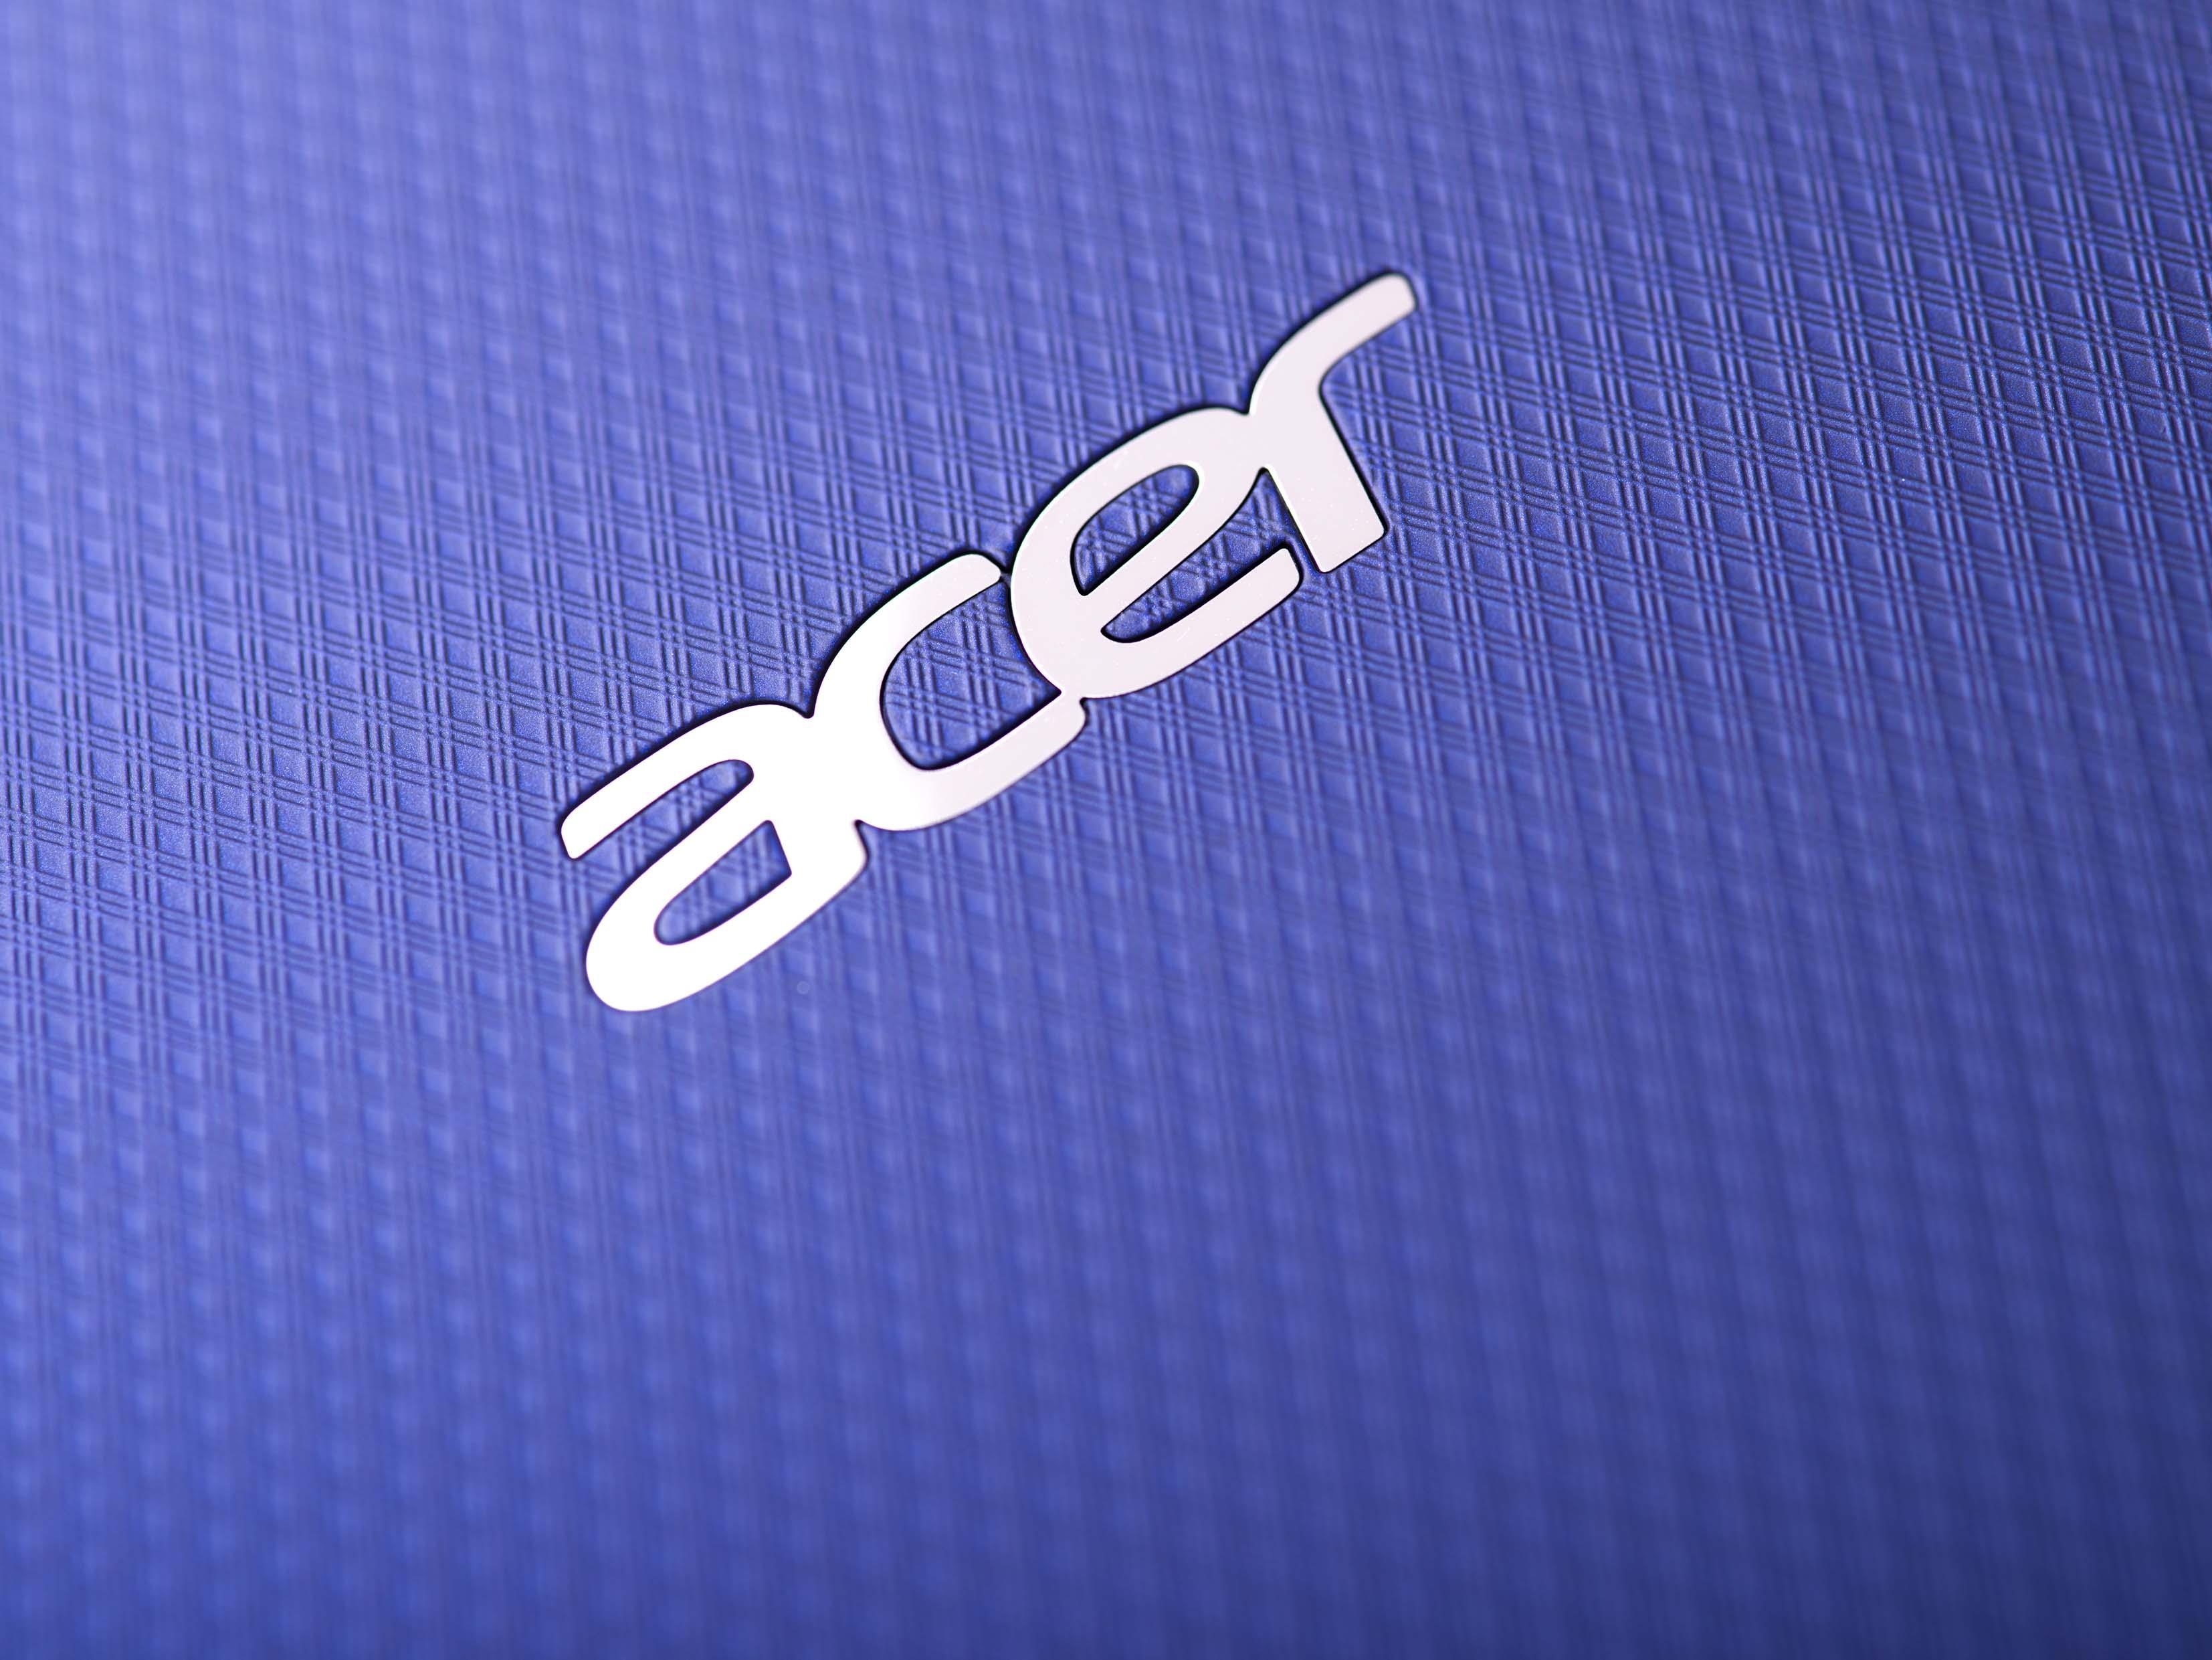 The Acer Logo on the new Iconia Tab 10